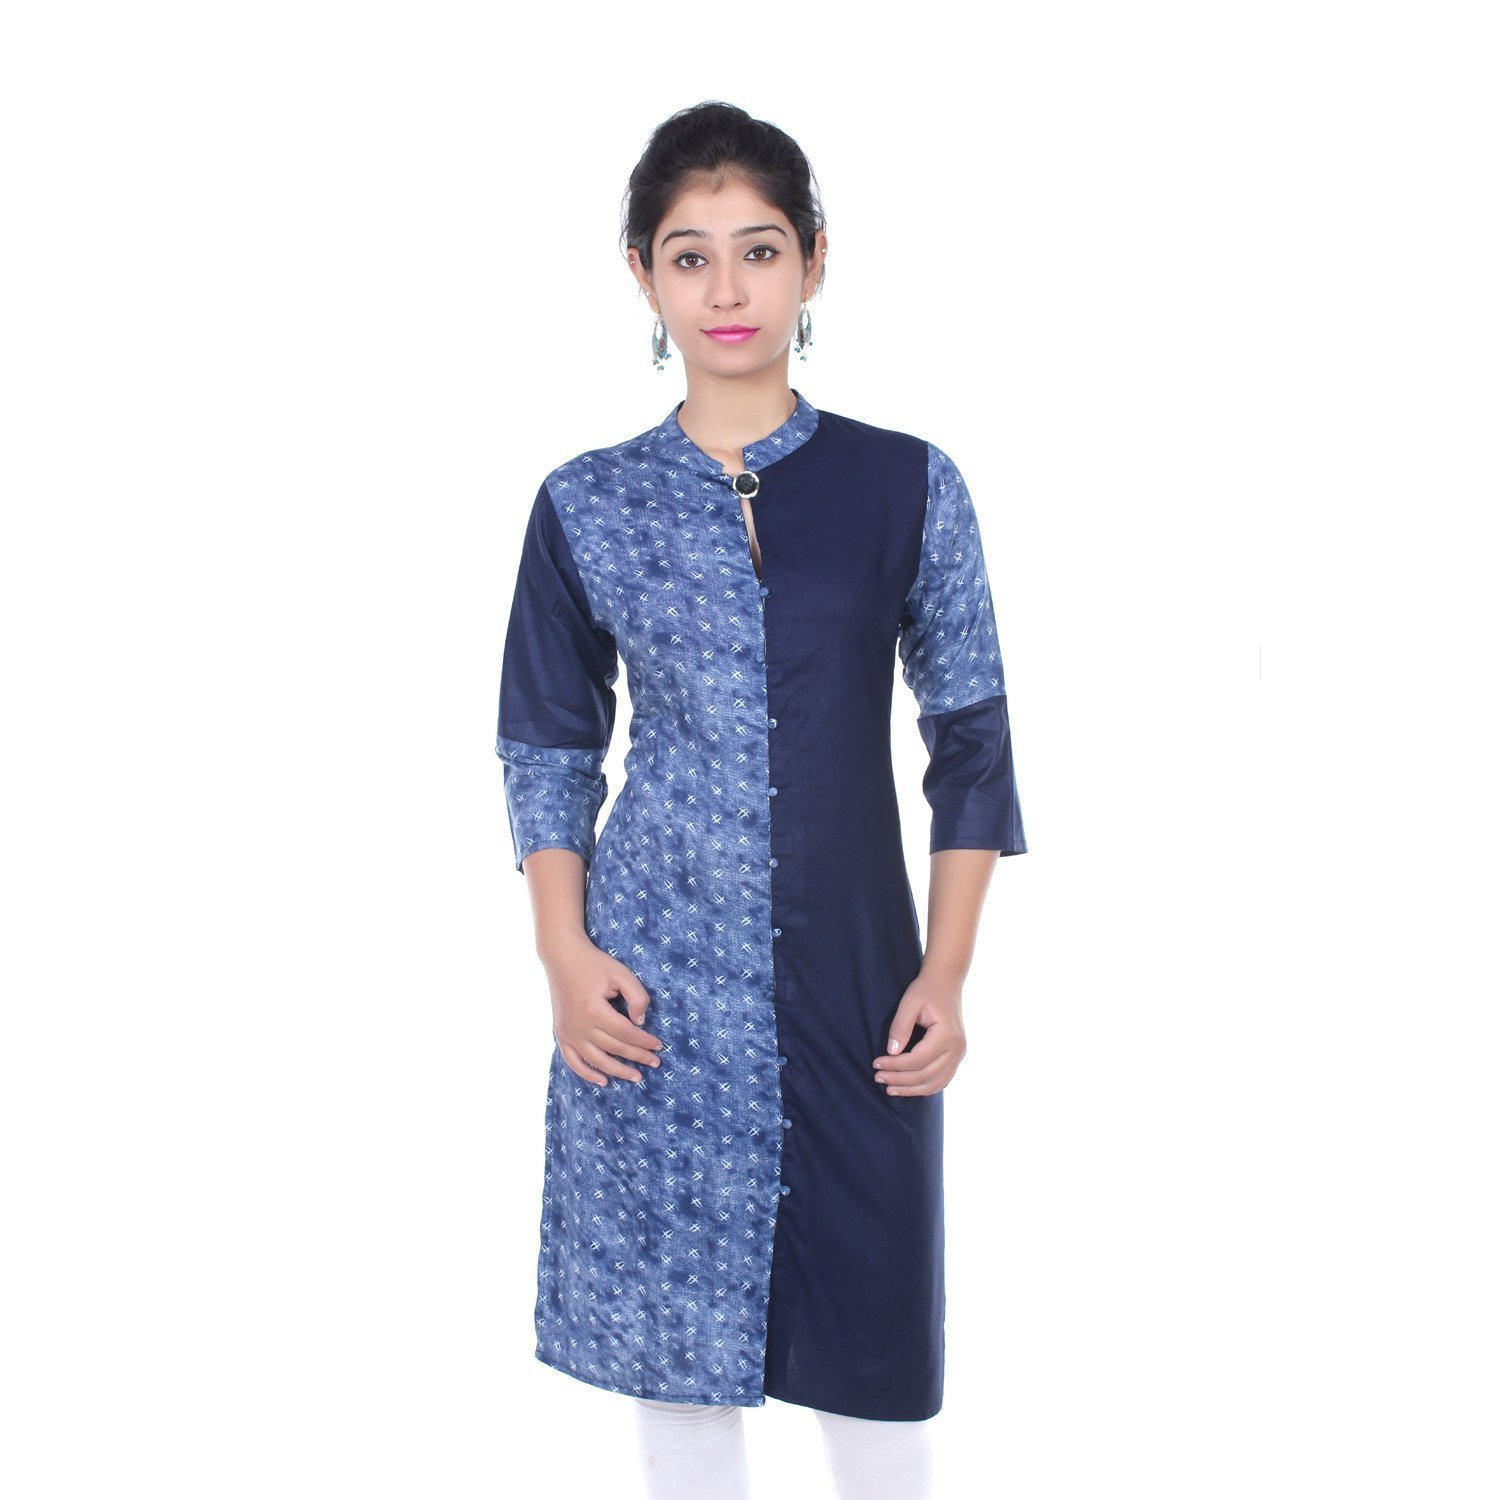 Chichi Indian Women Kurta Kurti 3/4 Sleeve Large Size Plain with One Side Printed Straight White-Blue Top